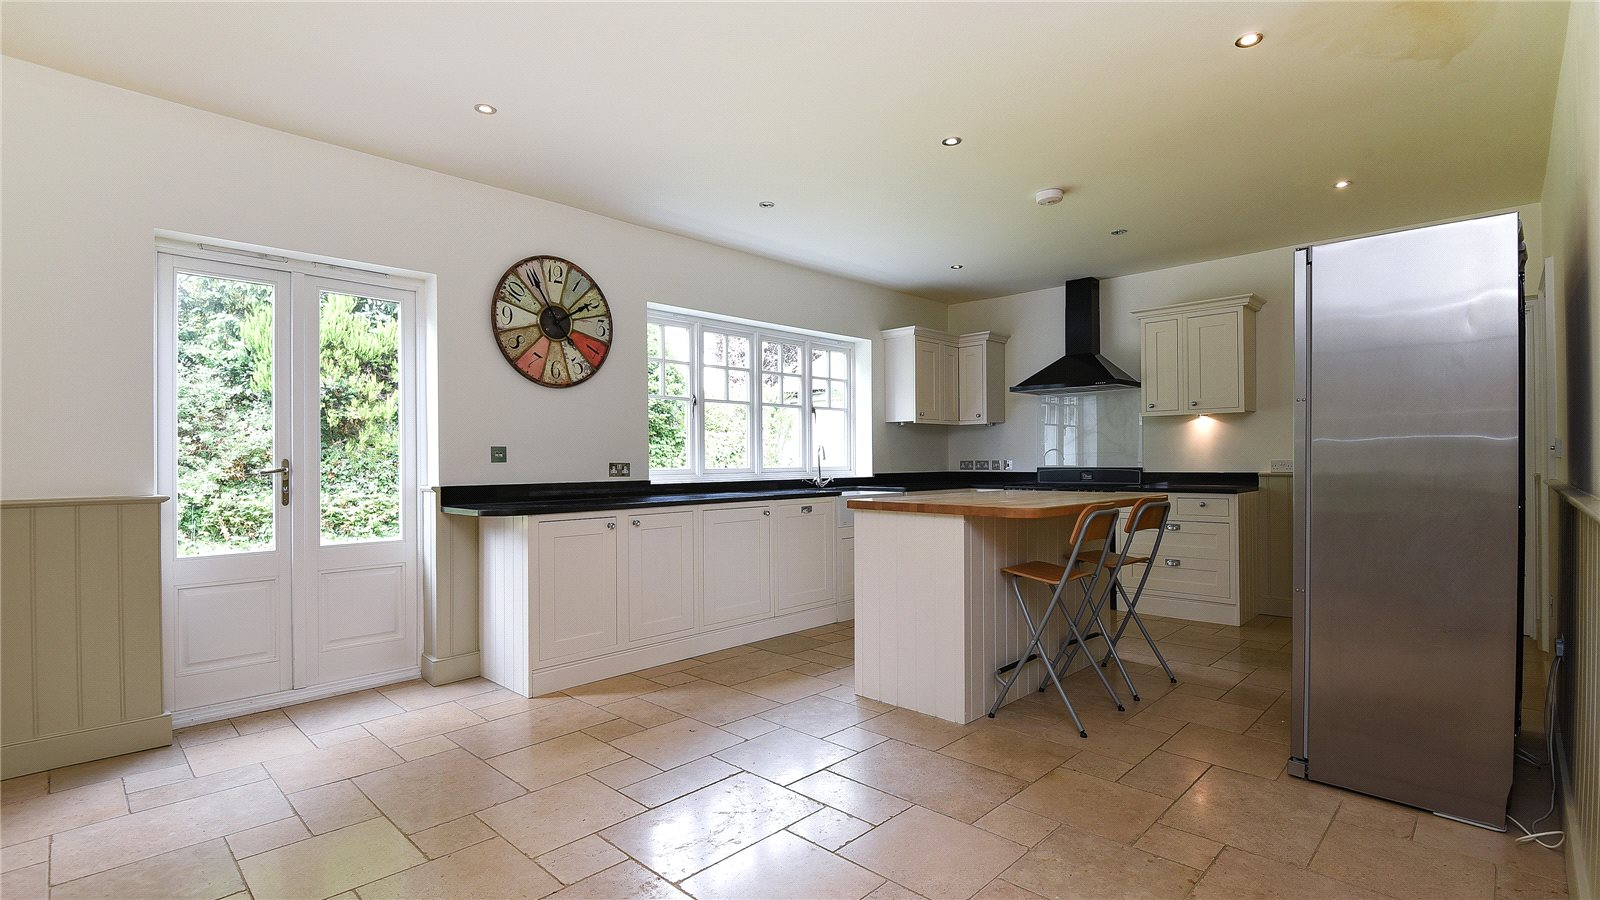 Additional photo for property listing at School Lane, Chalfont St Peter, Gerrards Cross, Buckinghamshire, SL9 Gerrards Cross, England